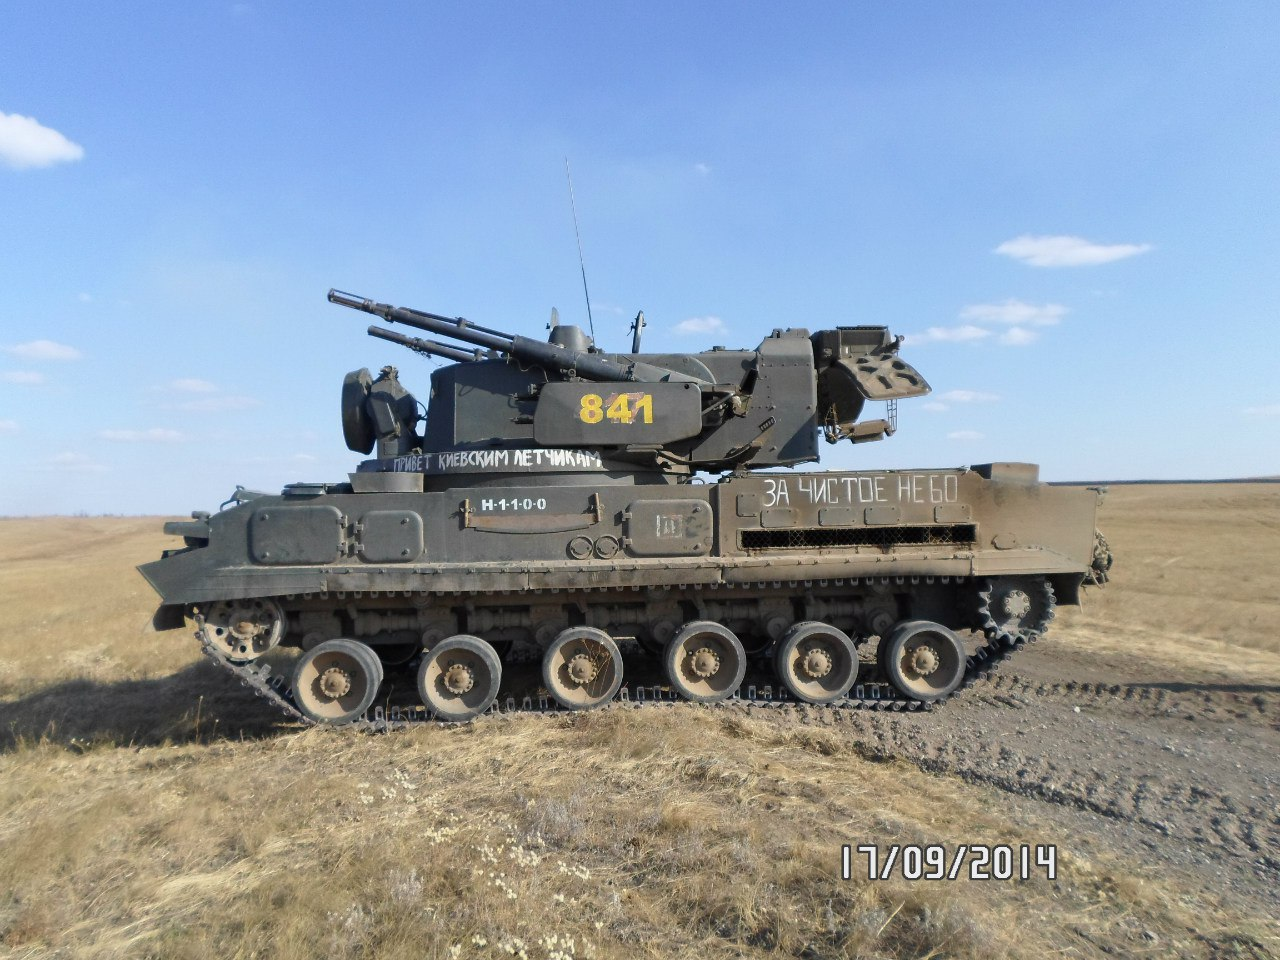 """A 2S6 Tungska self-propelled anti-aircraft system numbered 841. This is the most painted-over piece of military equipment of the 200th Motorized Infantry Brigade, with these inscriptions on the right side: """"Heavenly Sanctions,"""" """"For the Motherland!!!"""" """"For Stalin,"""" """"Death to the Junta."""" On the left side: """"For a clear sky,"""" """"Hello Kiev Pilots."""" Archive / Original"""